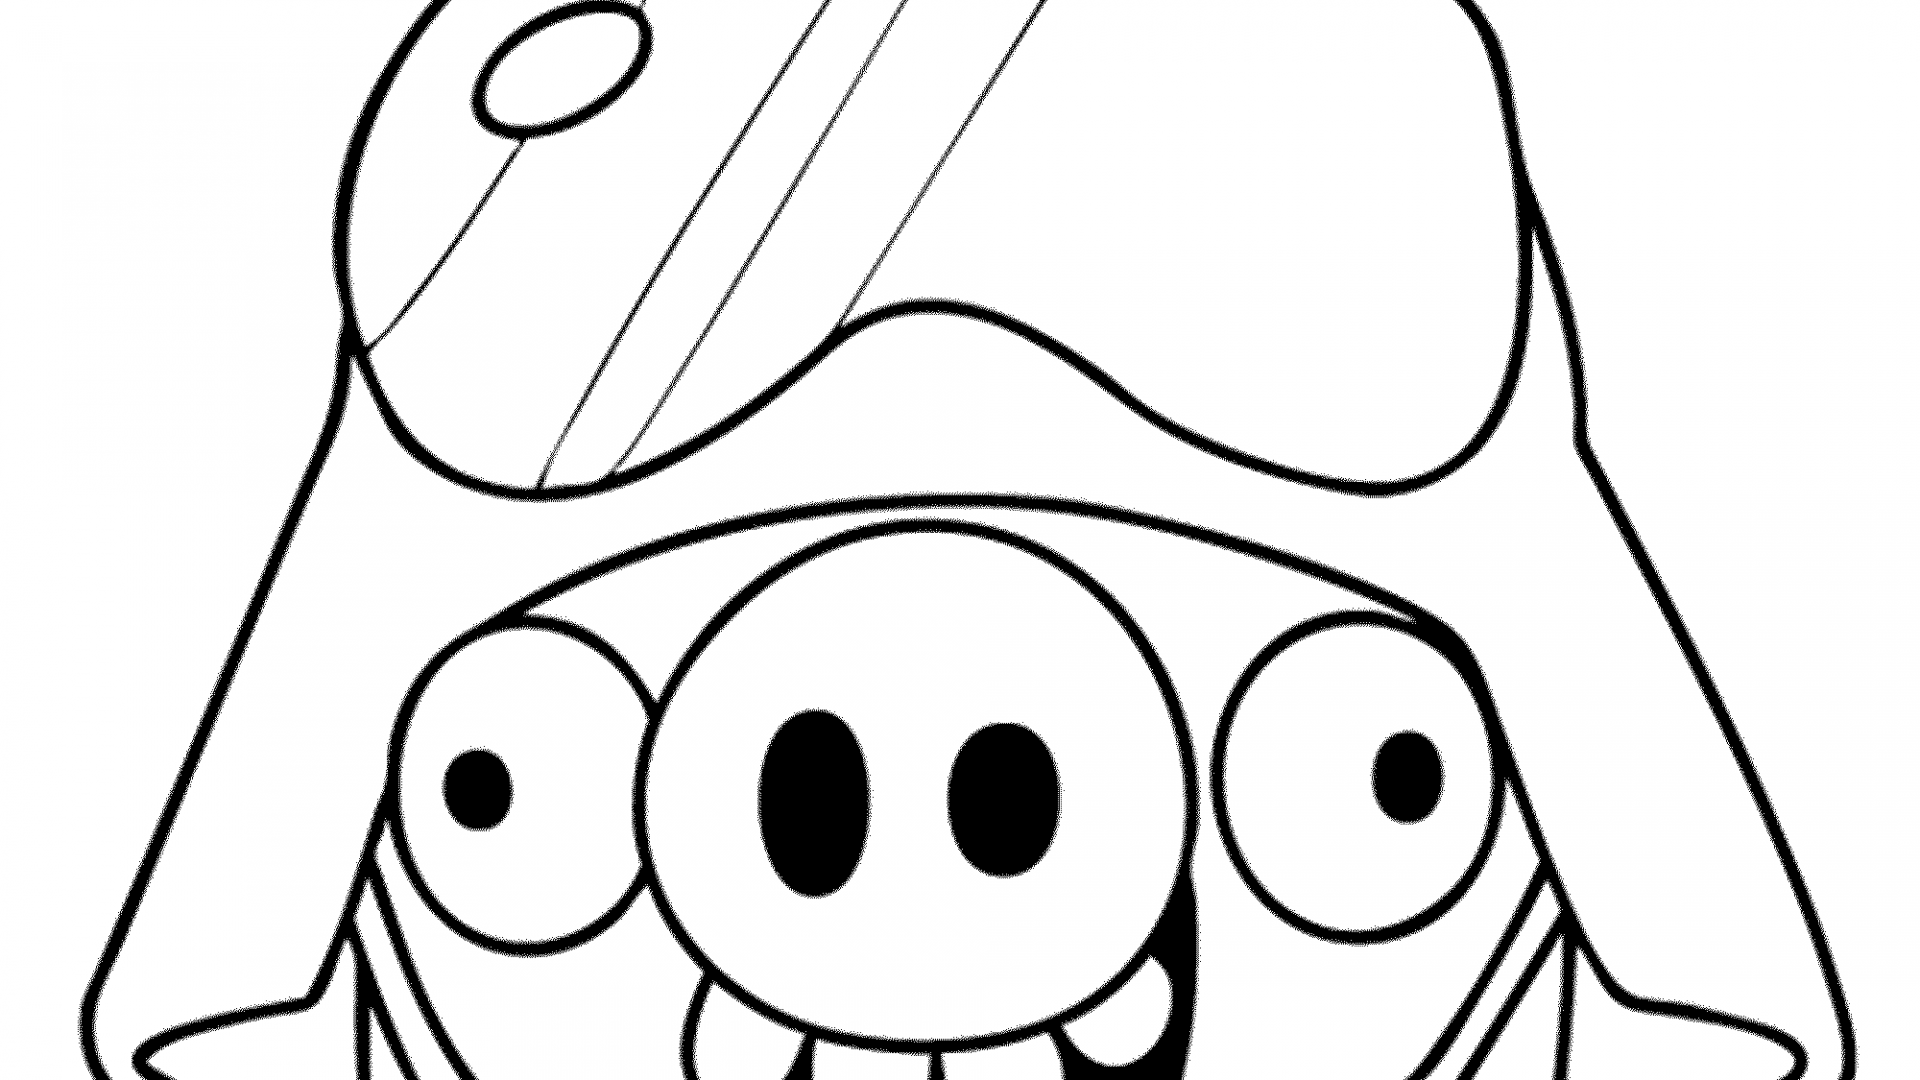 1920x1080 Angry Birds Red Coloring Page Free Printable Pages Cartoons Space